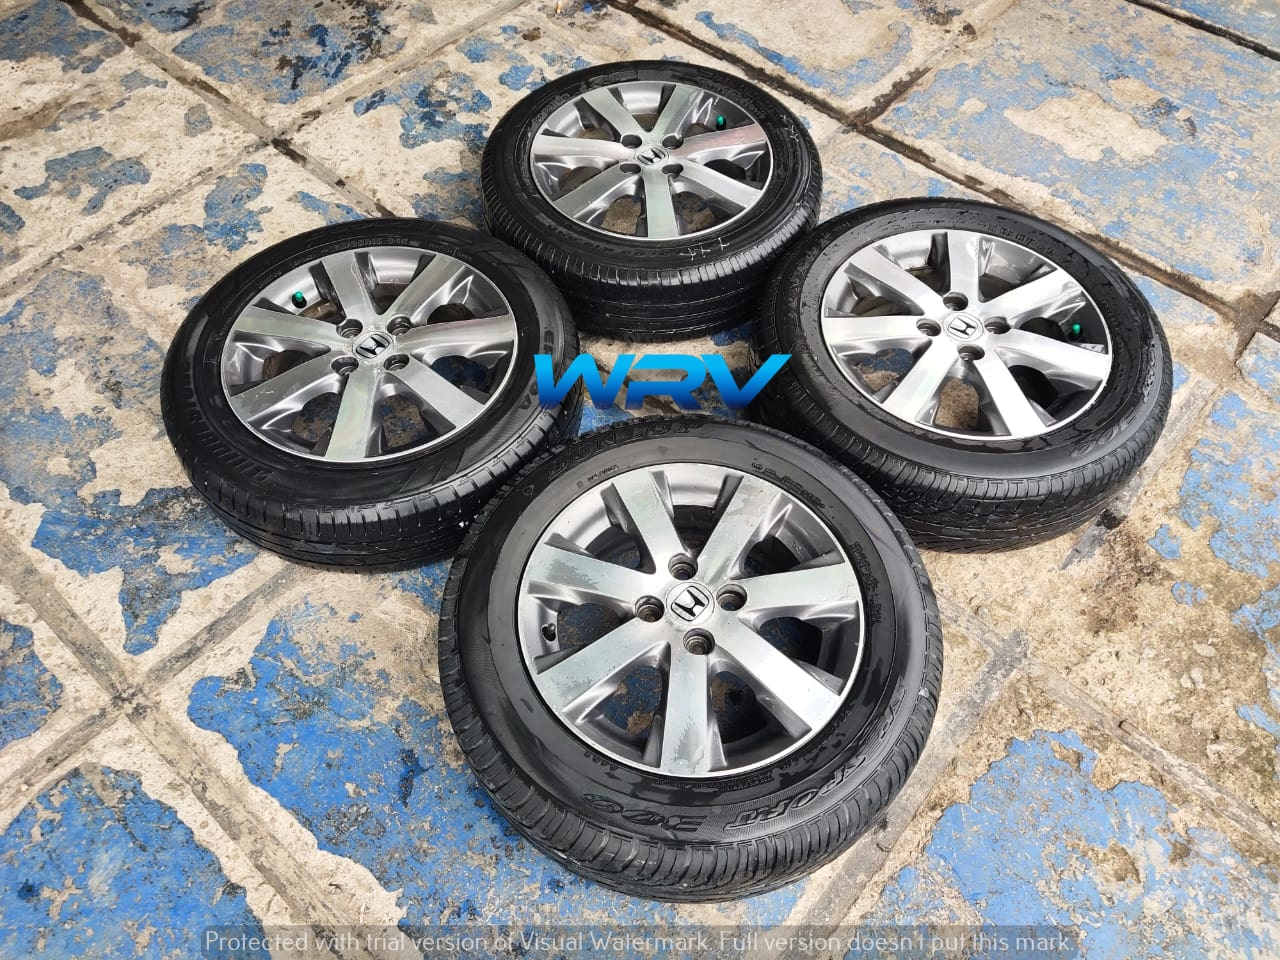 velg seken murah bekas freed ring 15×5 pcd 4×100 plus ban